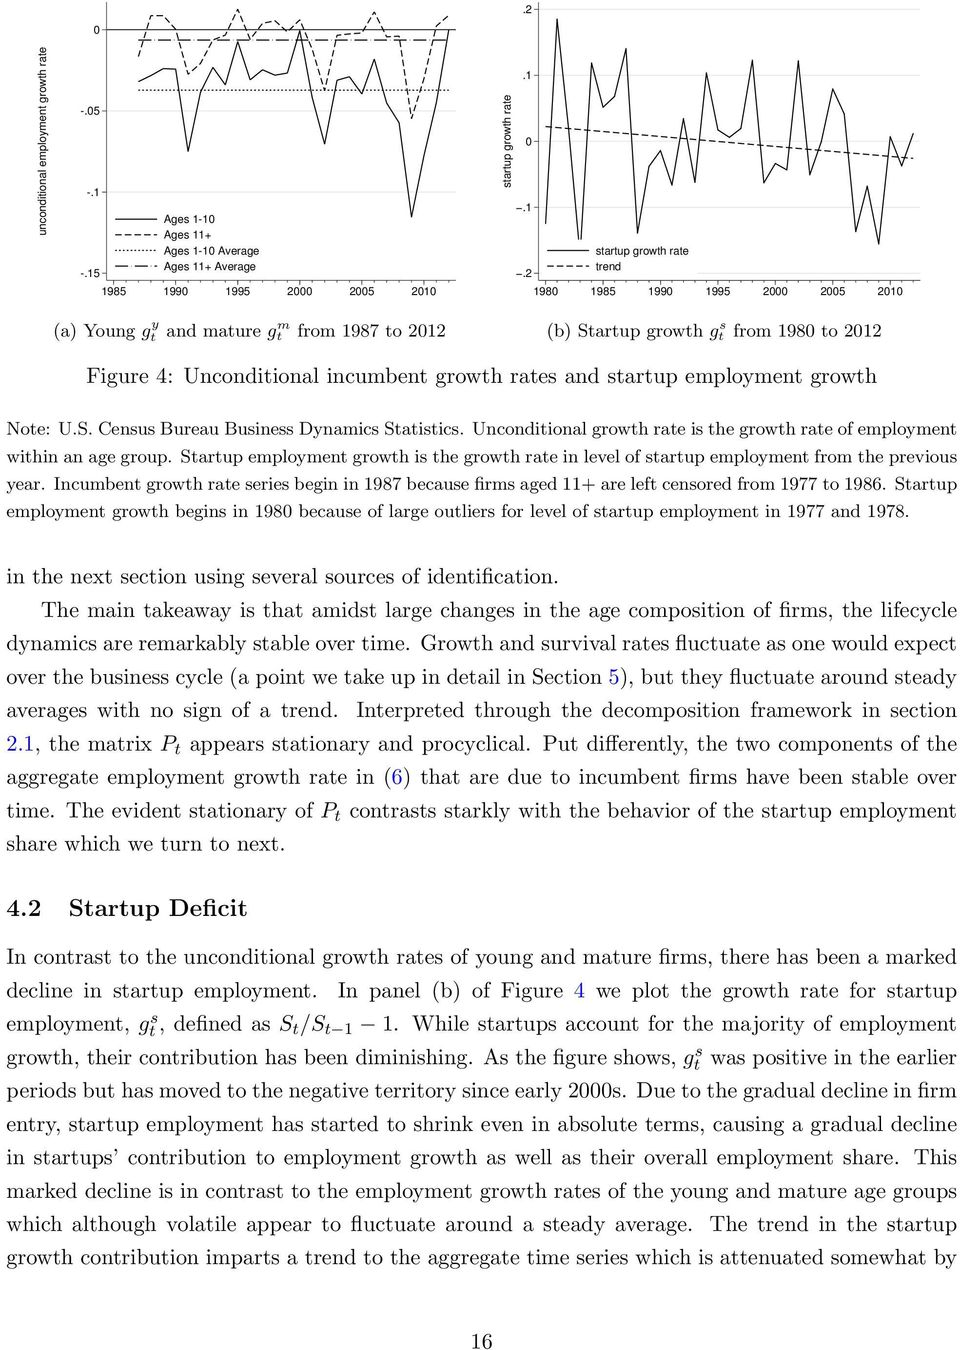 mature g m t from 1987 to 2012 (b) Startup growth g s t from 1980 to 2012 Figure 4: Unconditional incumbent growth rates and startup employment growth Note: U.S. Census Bureau Business Dynamics Statistics.